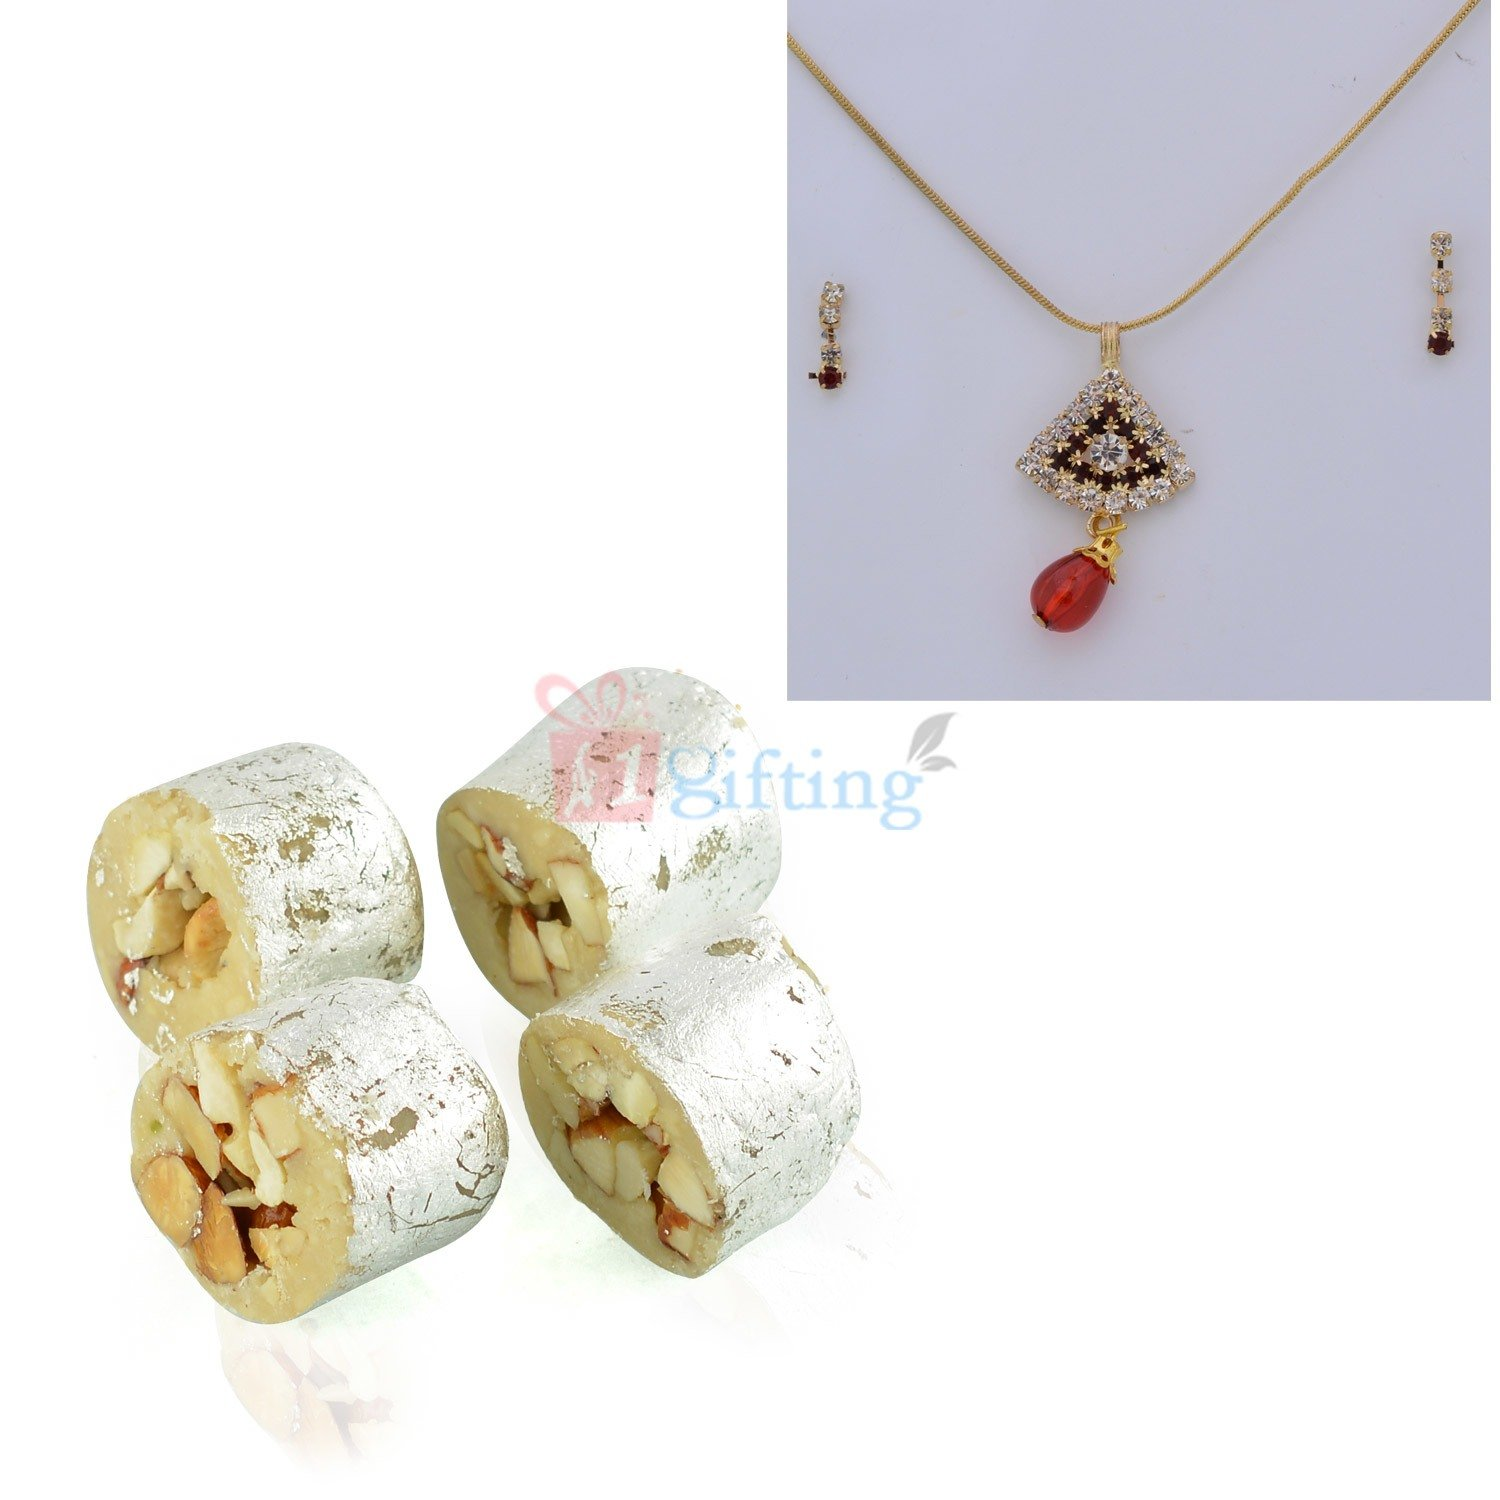 Diamond Locket Earings with Chain and Sweet Gift